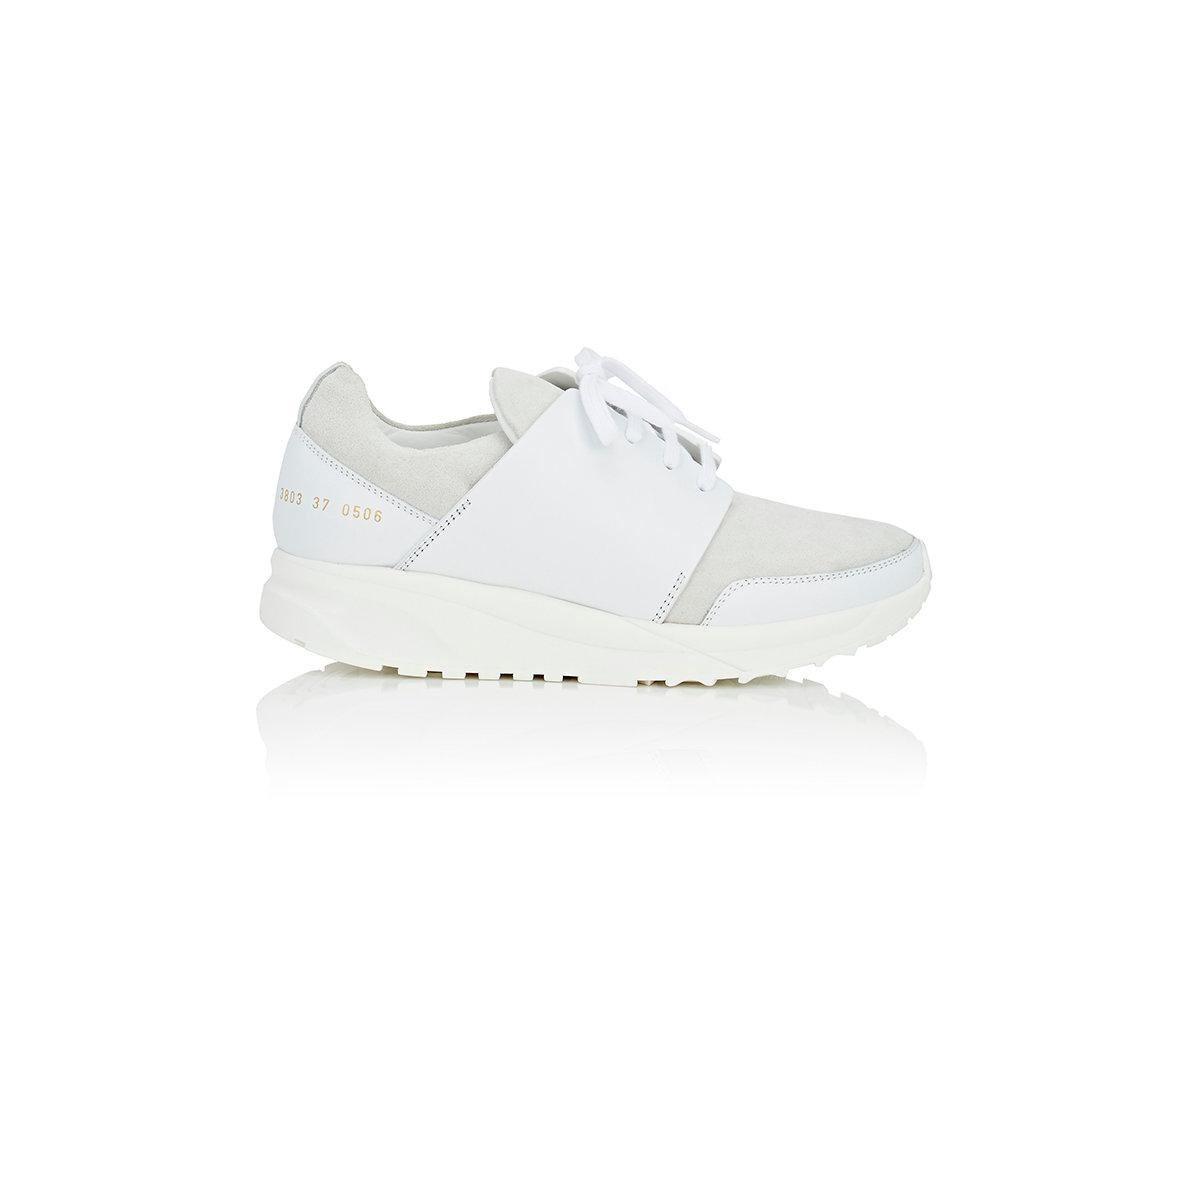 common projects track suede leather sneakers in white lyst. Black Bedroom Furniture Sets. Home Design Ideas